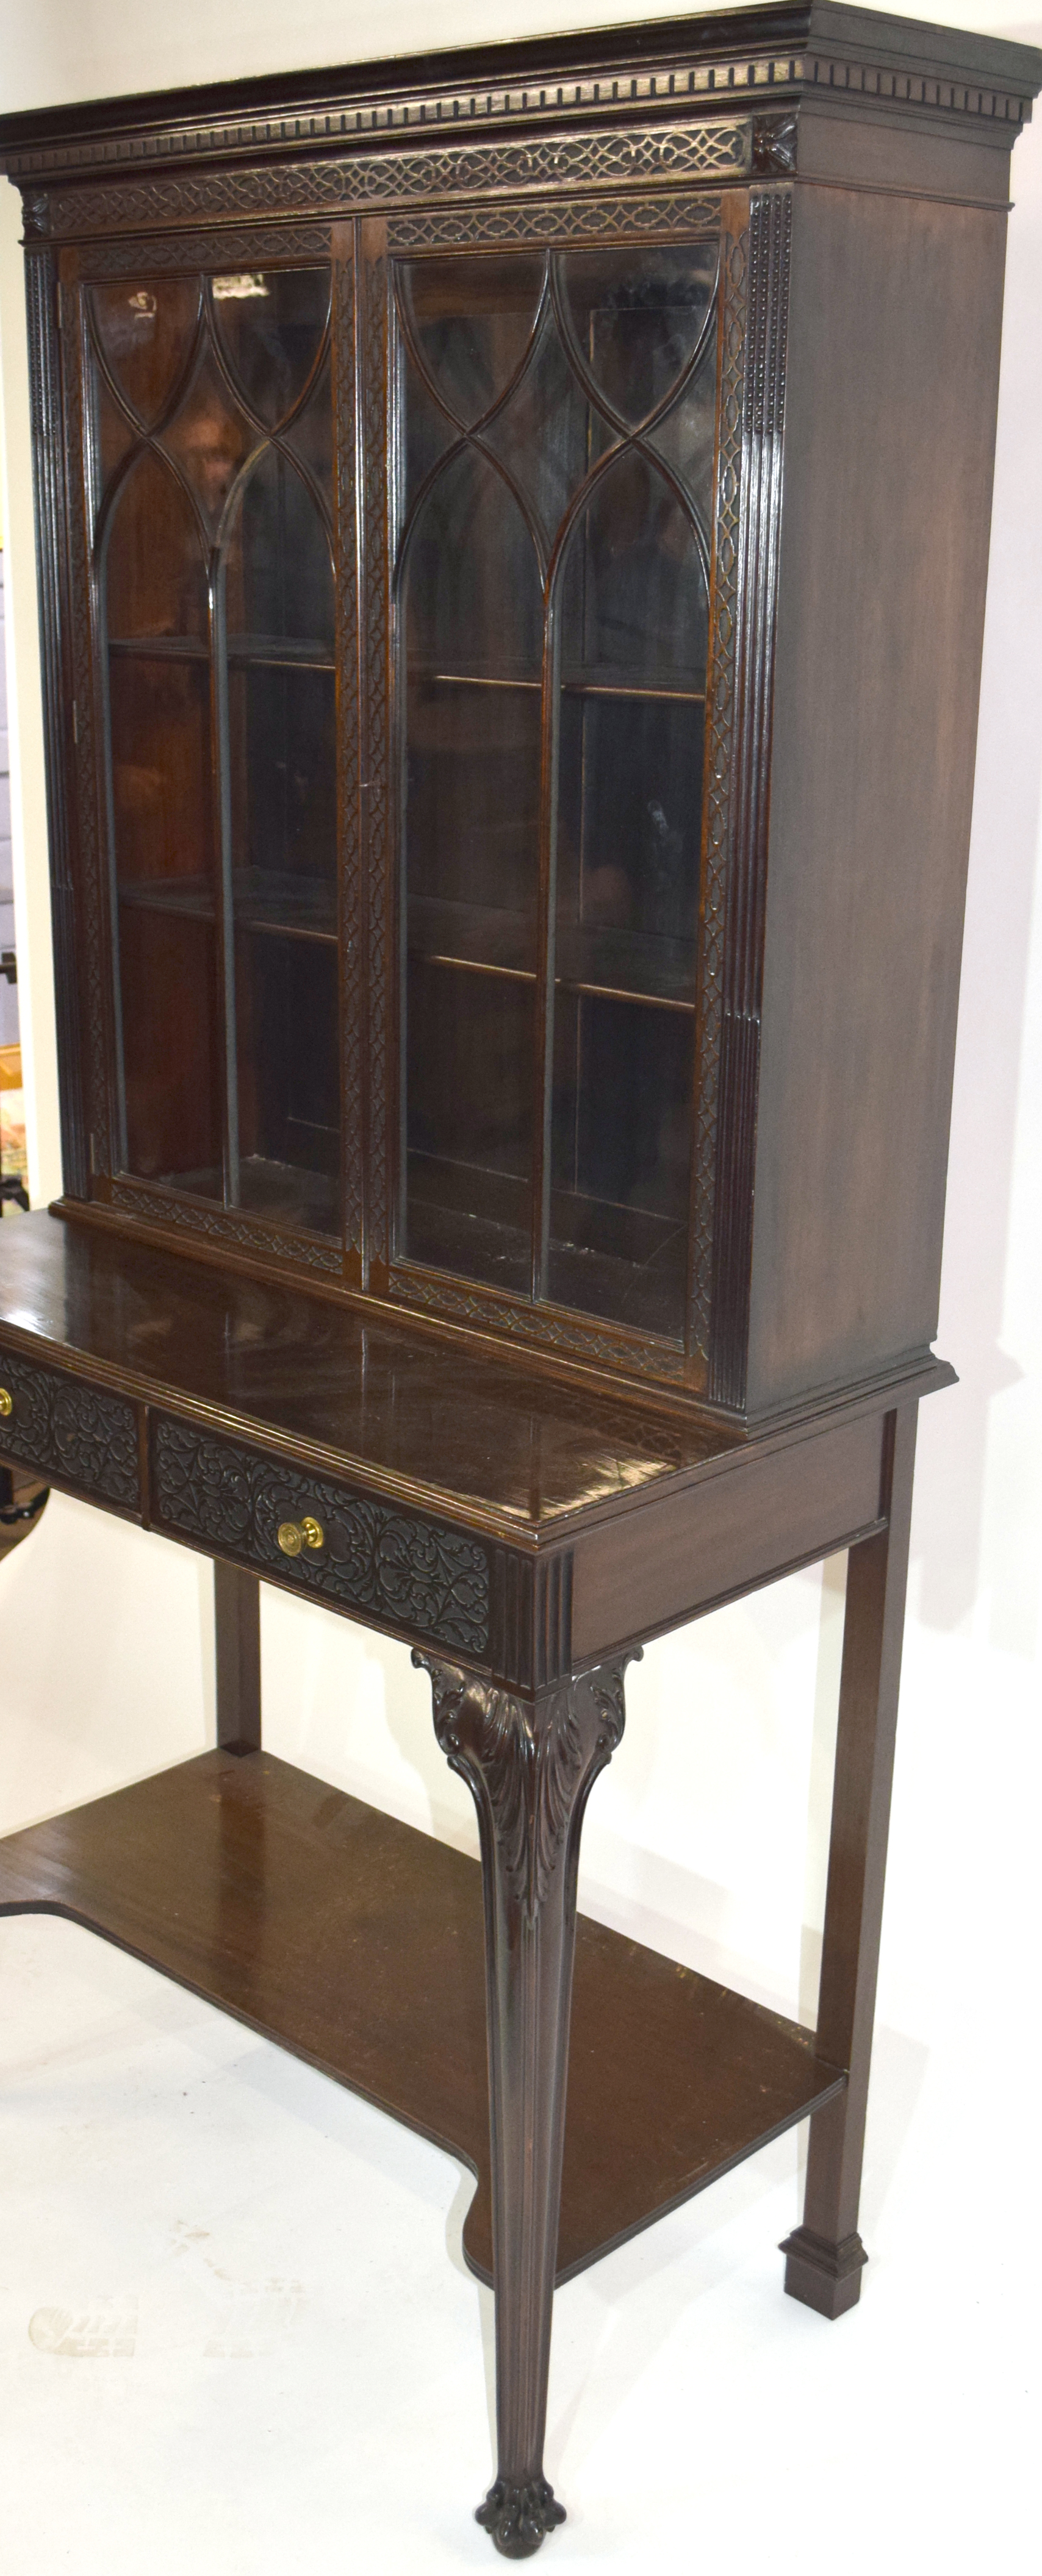 Edwardian mahogany side cabinet with shaped cornice over a top section with two glazed doors and - Image 3 of 7